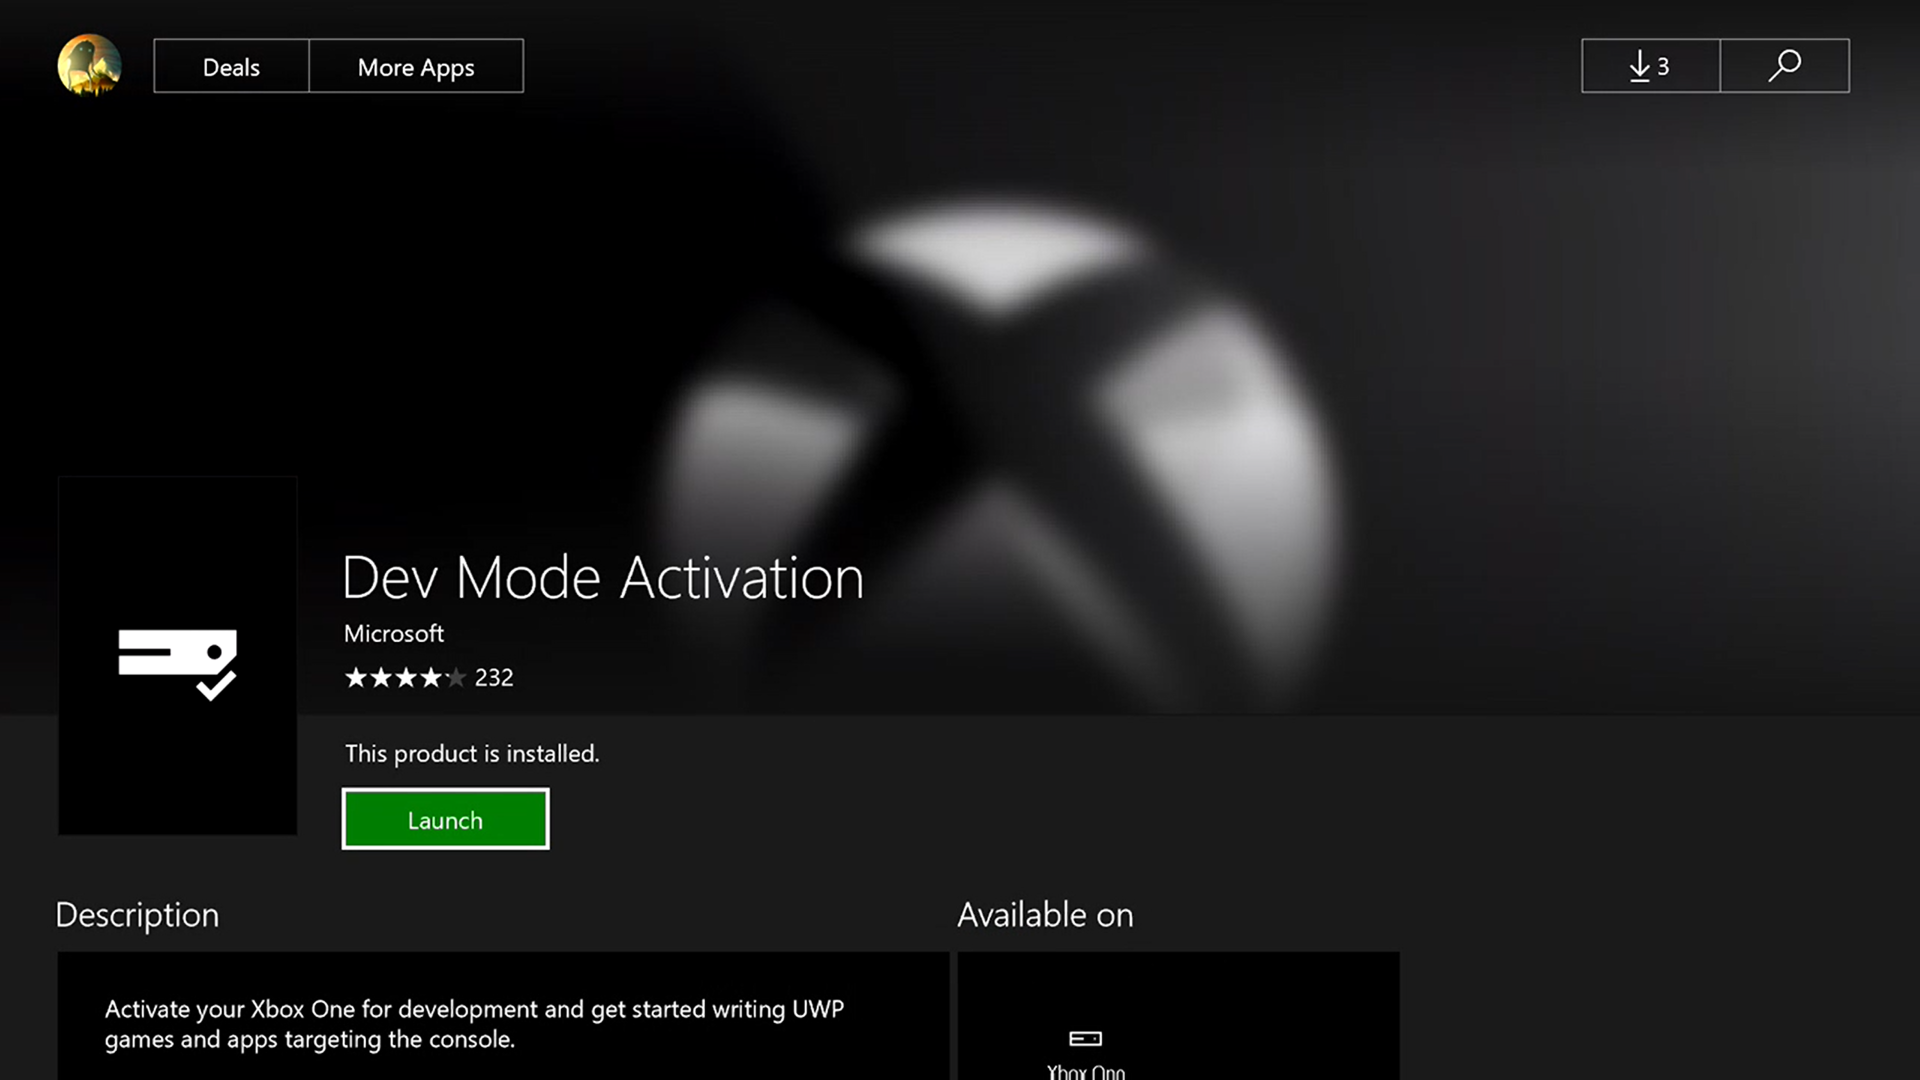 Xbox One Developer Mode activation - Windows UWP